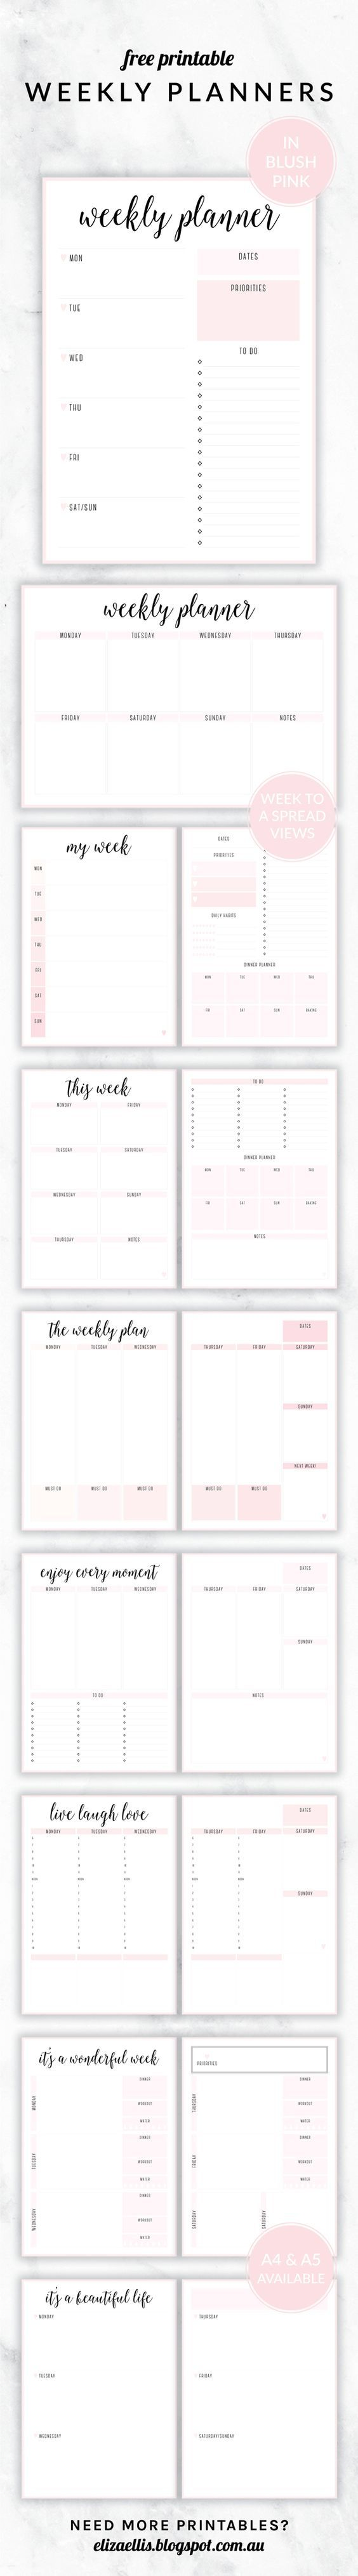 FREE PRINTABLE IRMA WEEKLY PLANNERS | Organizing solutions, Weekly ...